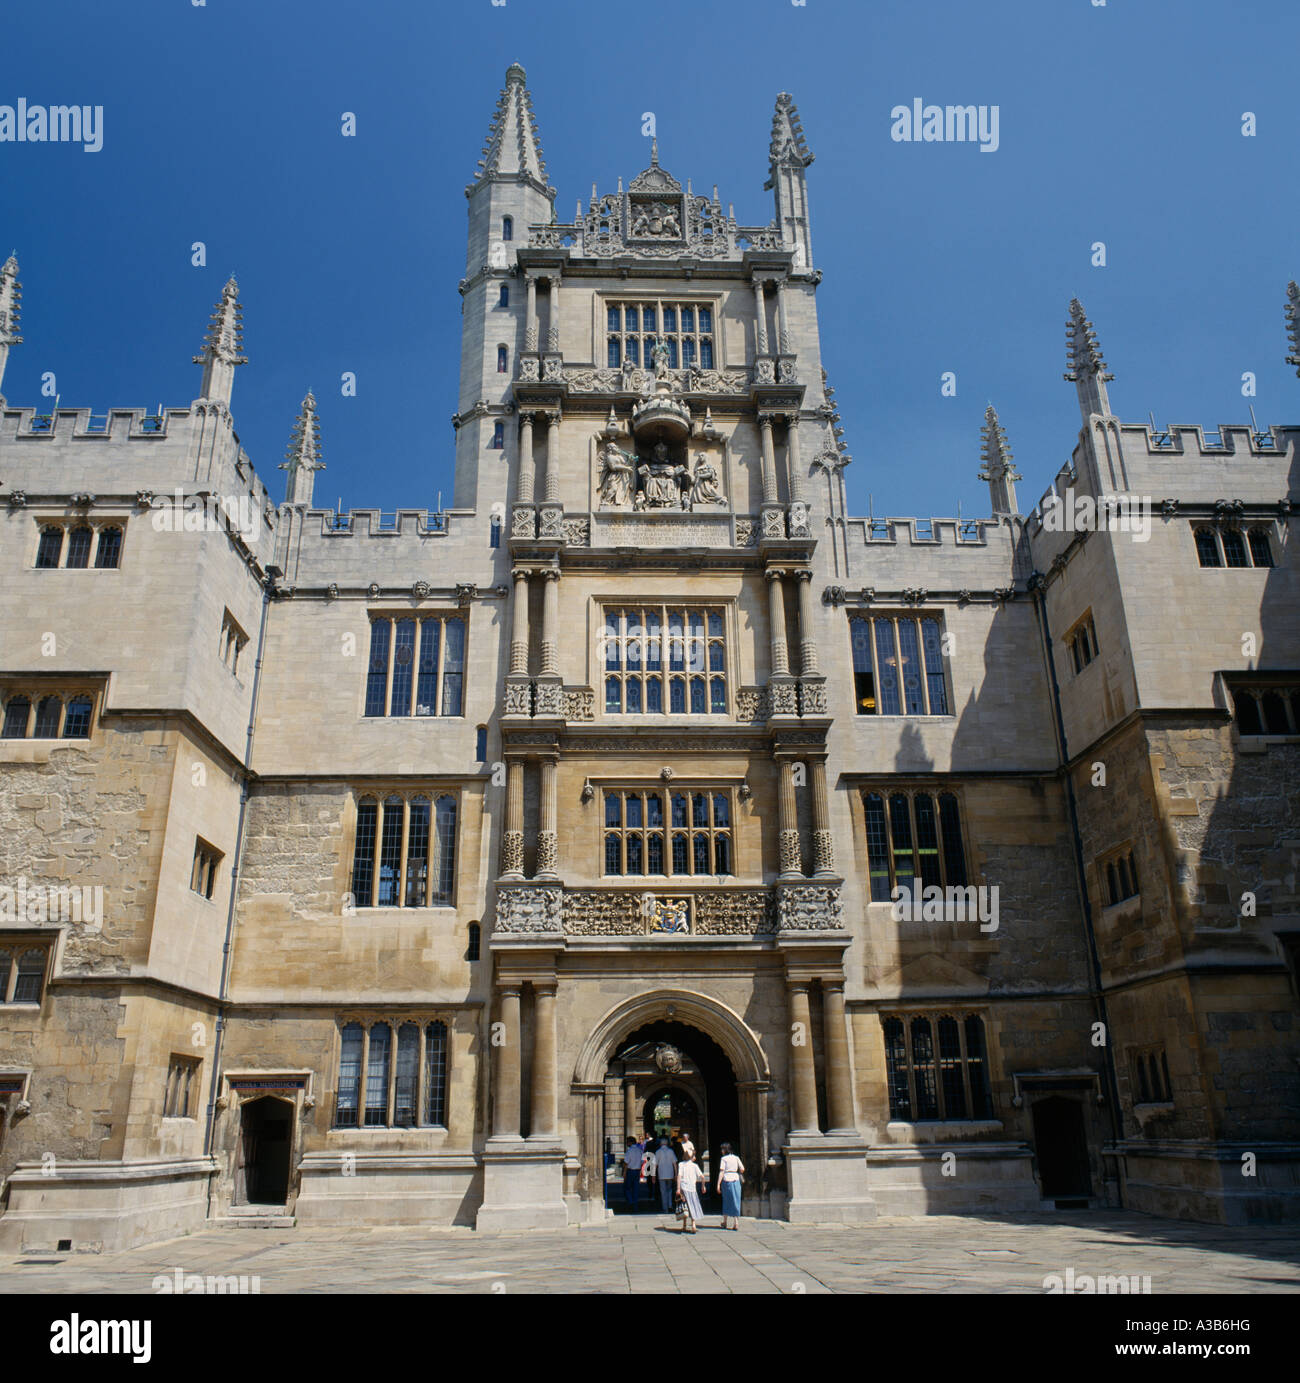 ENGLAND Oxfordshire Oxford University Architecture Old Bodleian Library  Exterior Facade People Walking Through Archway